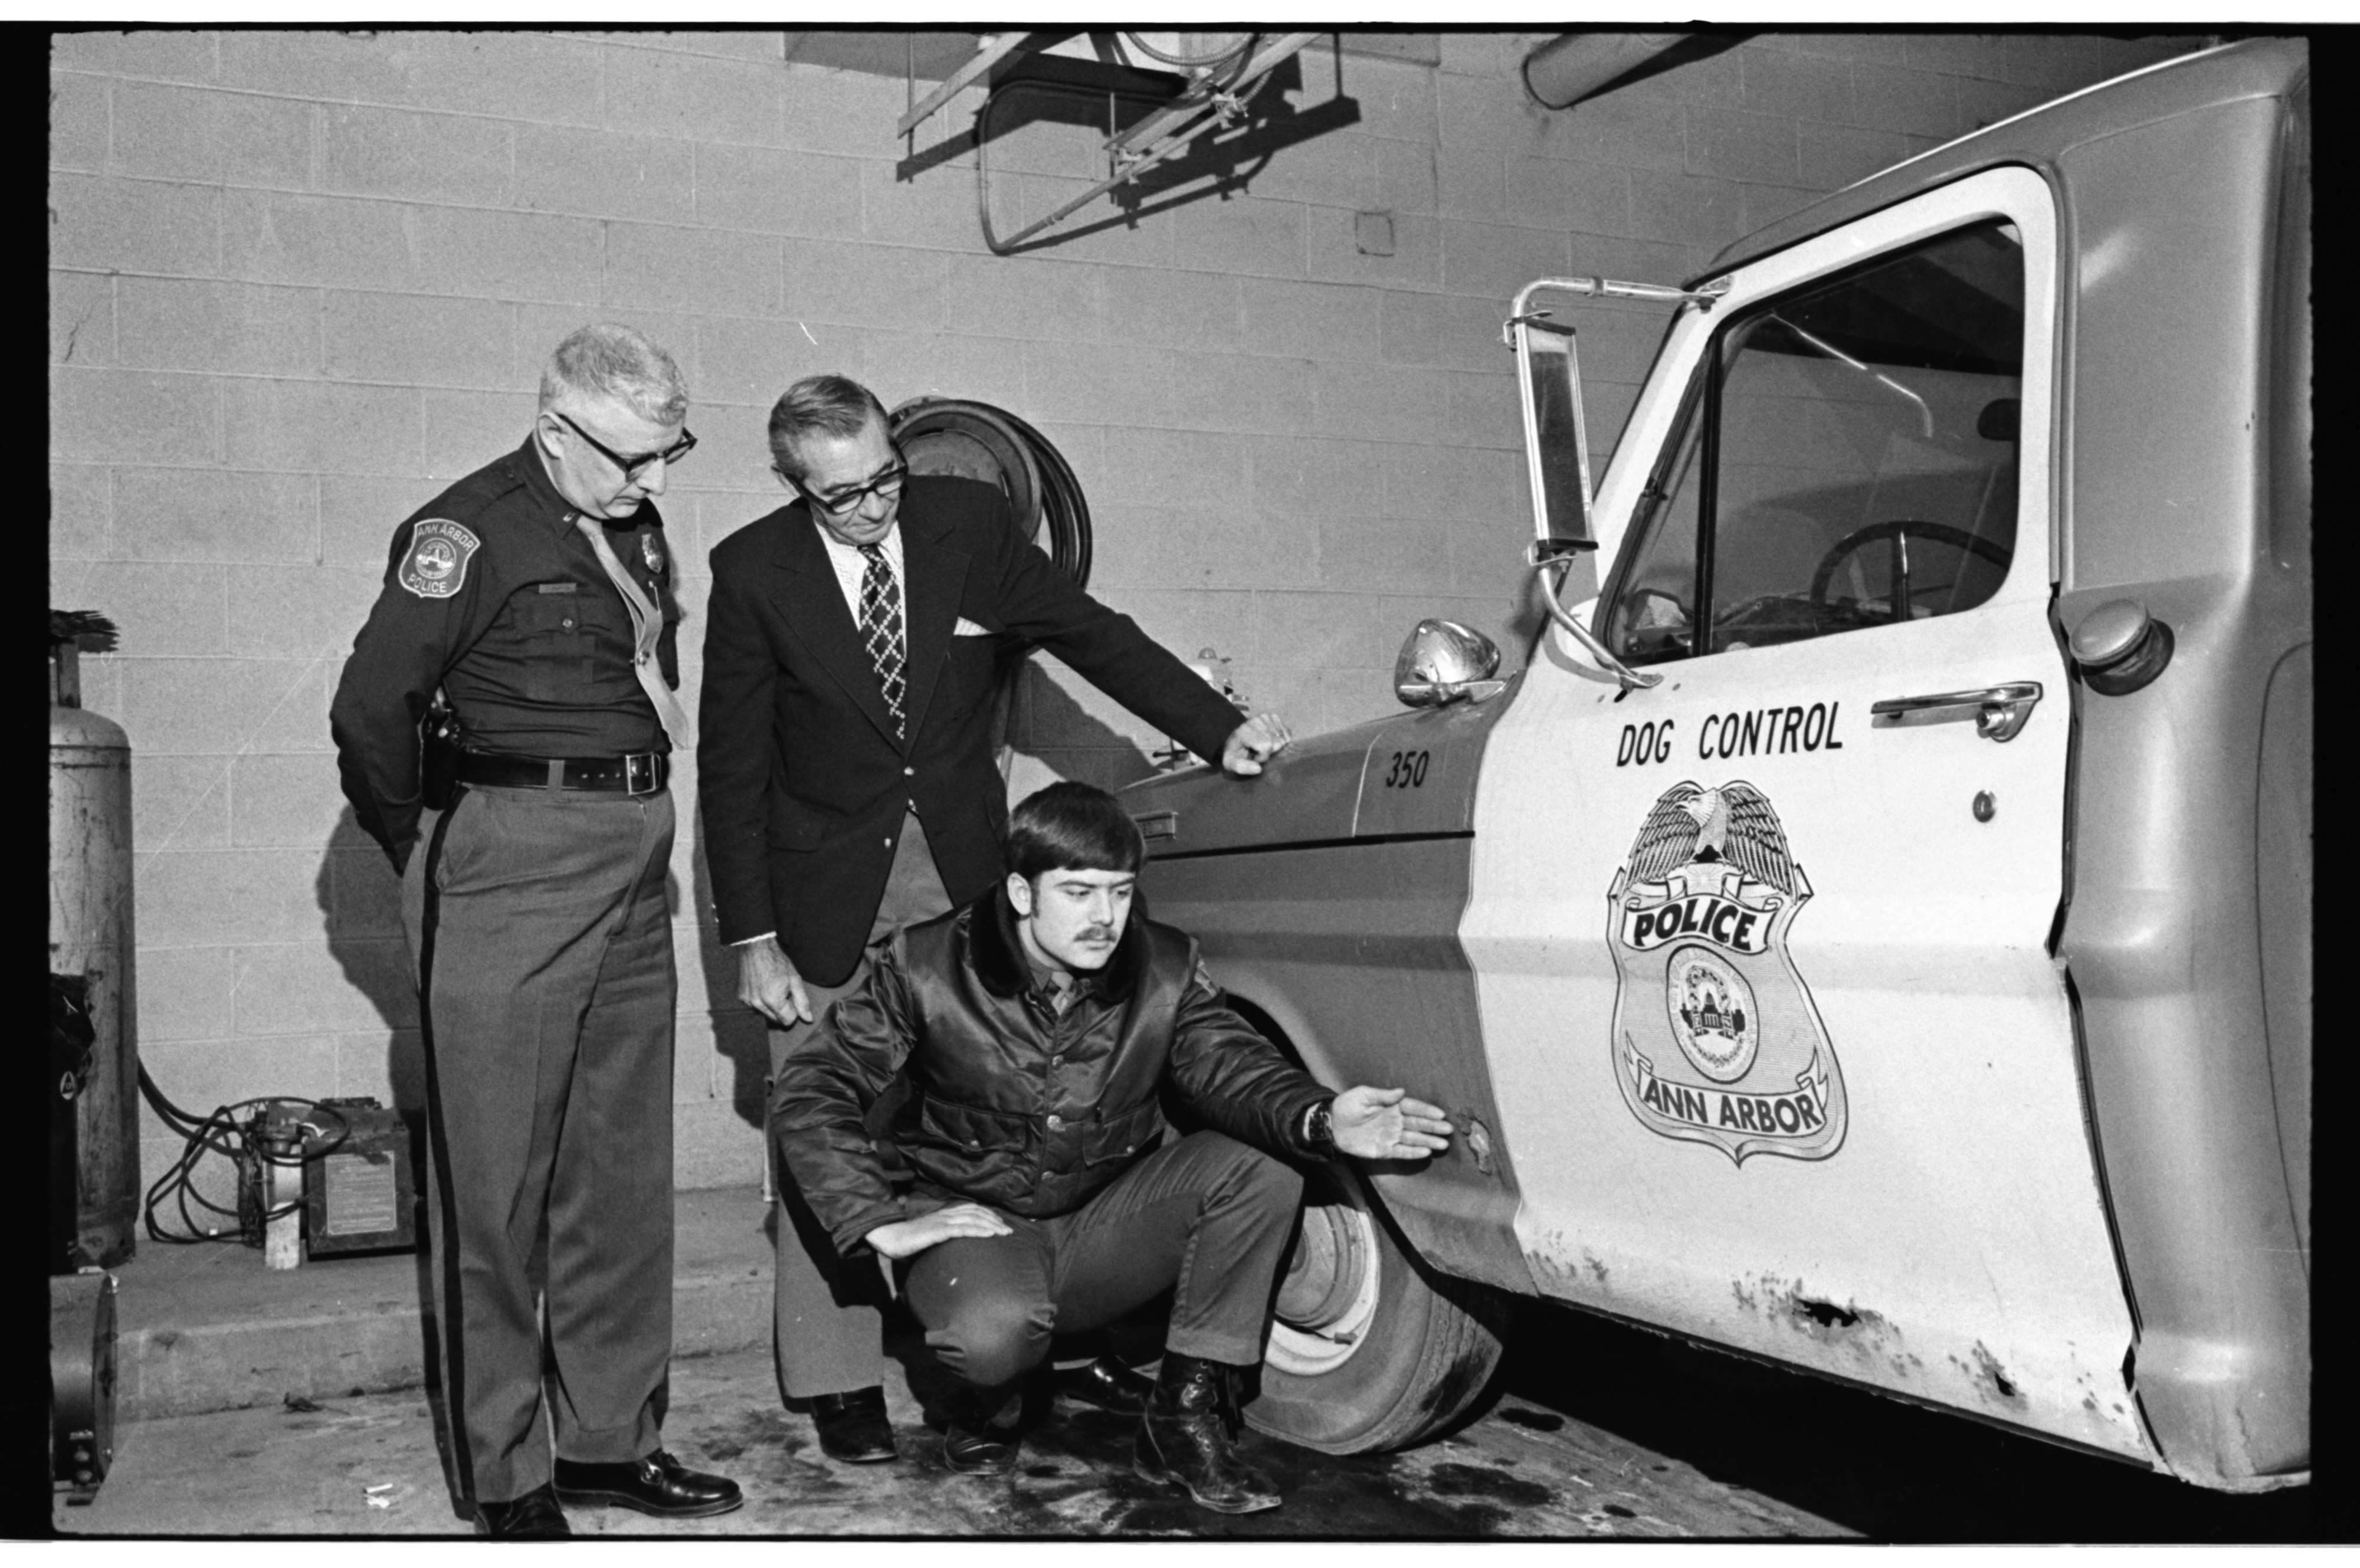 Ann Arbor Police Officer Aided In Arrests In Armed Robbery at Ann Arbor Bank Branch on Packard Rd, March 1973 image